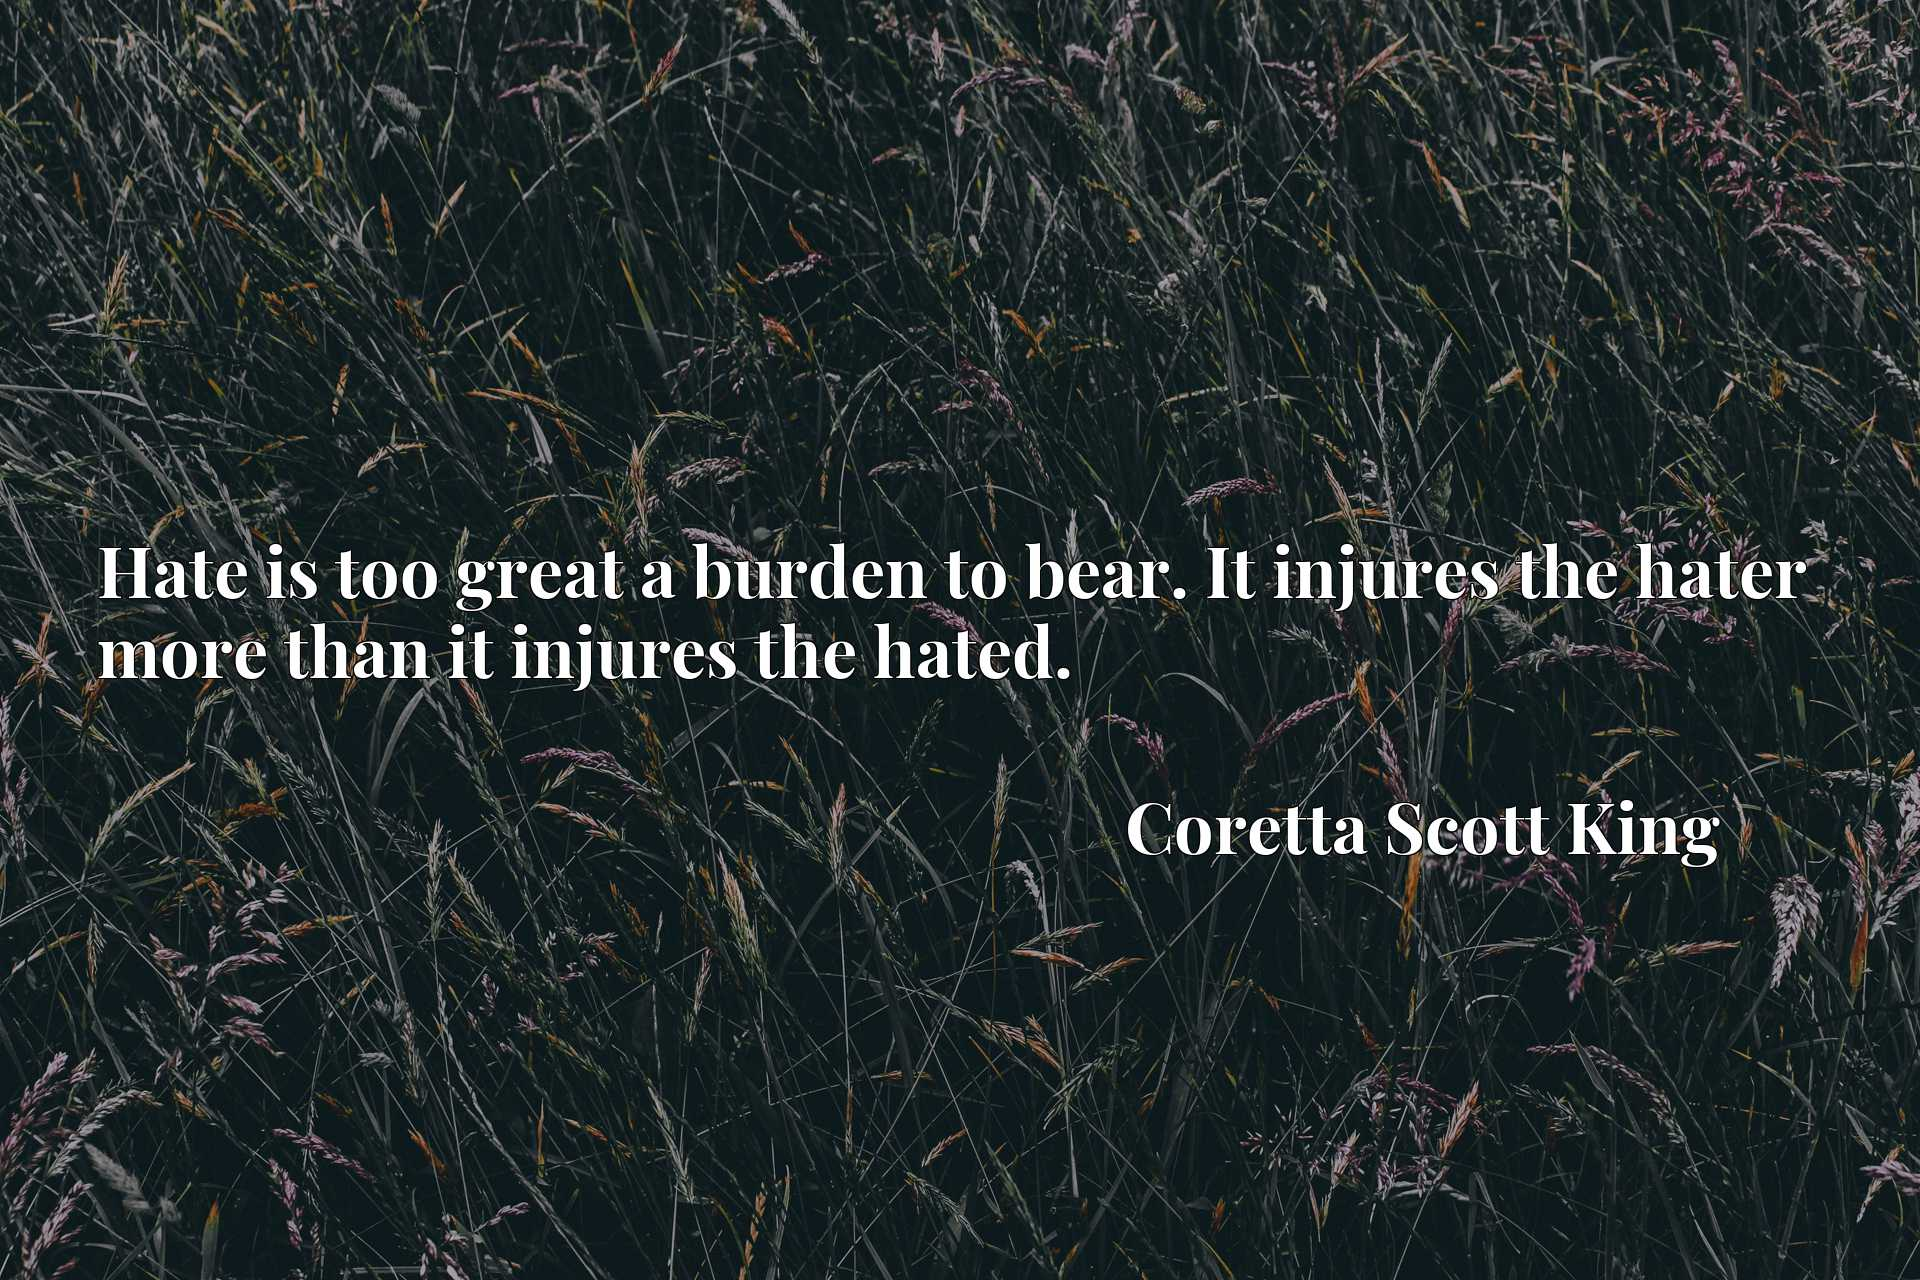 Hate is too great a burden to bear. It injures the hater more than it injures the hated.